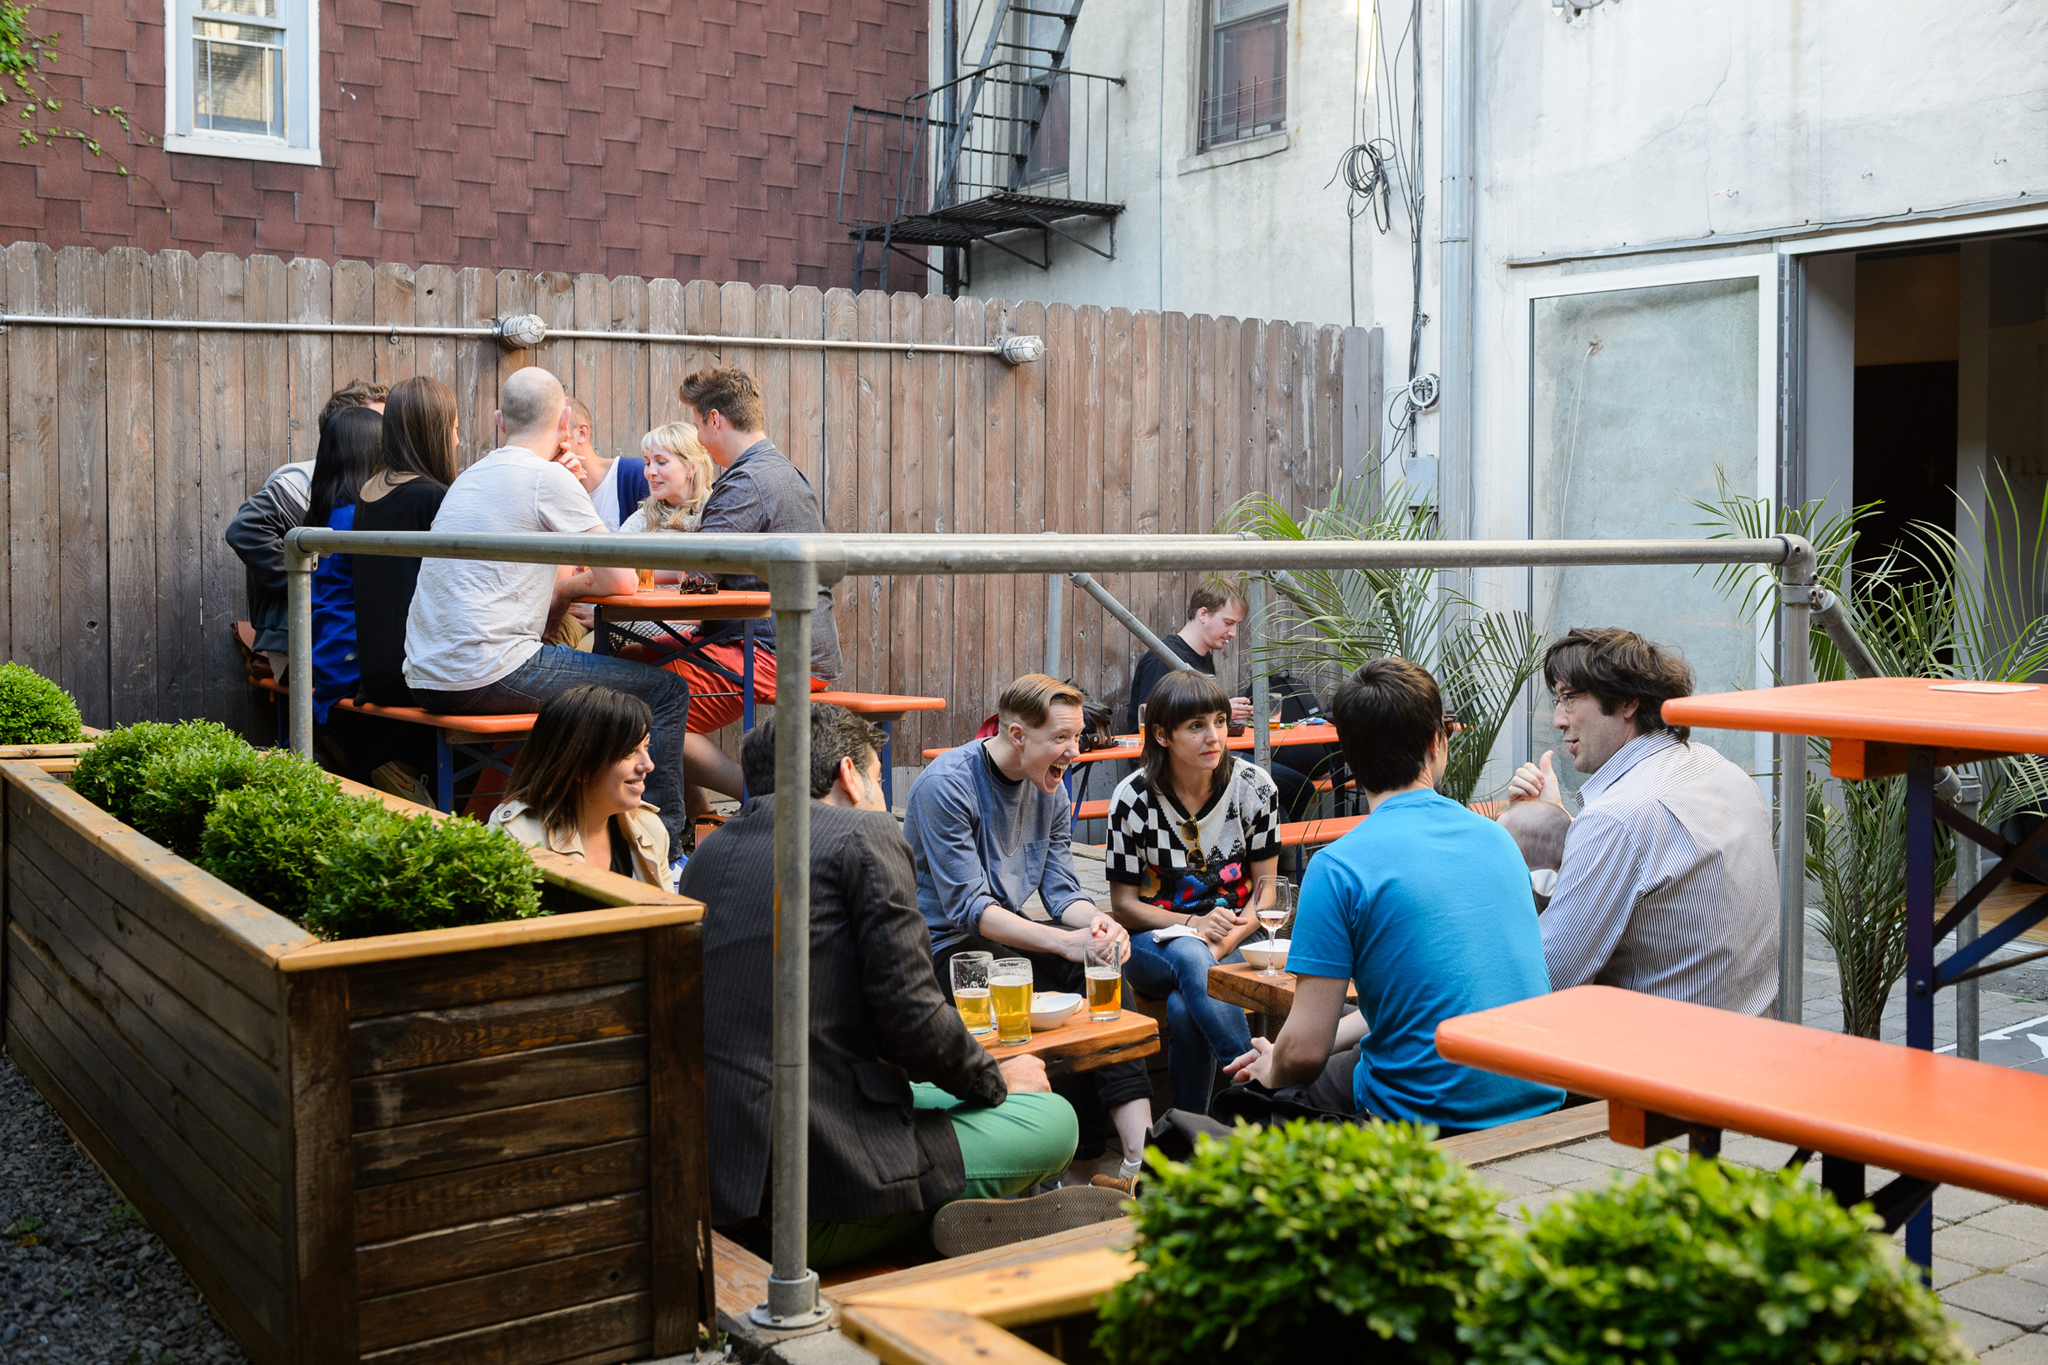 Best bars for day-drinking: outdoor bars where you can hang out